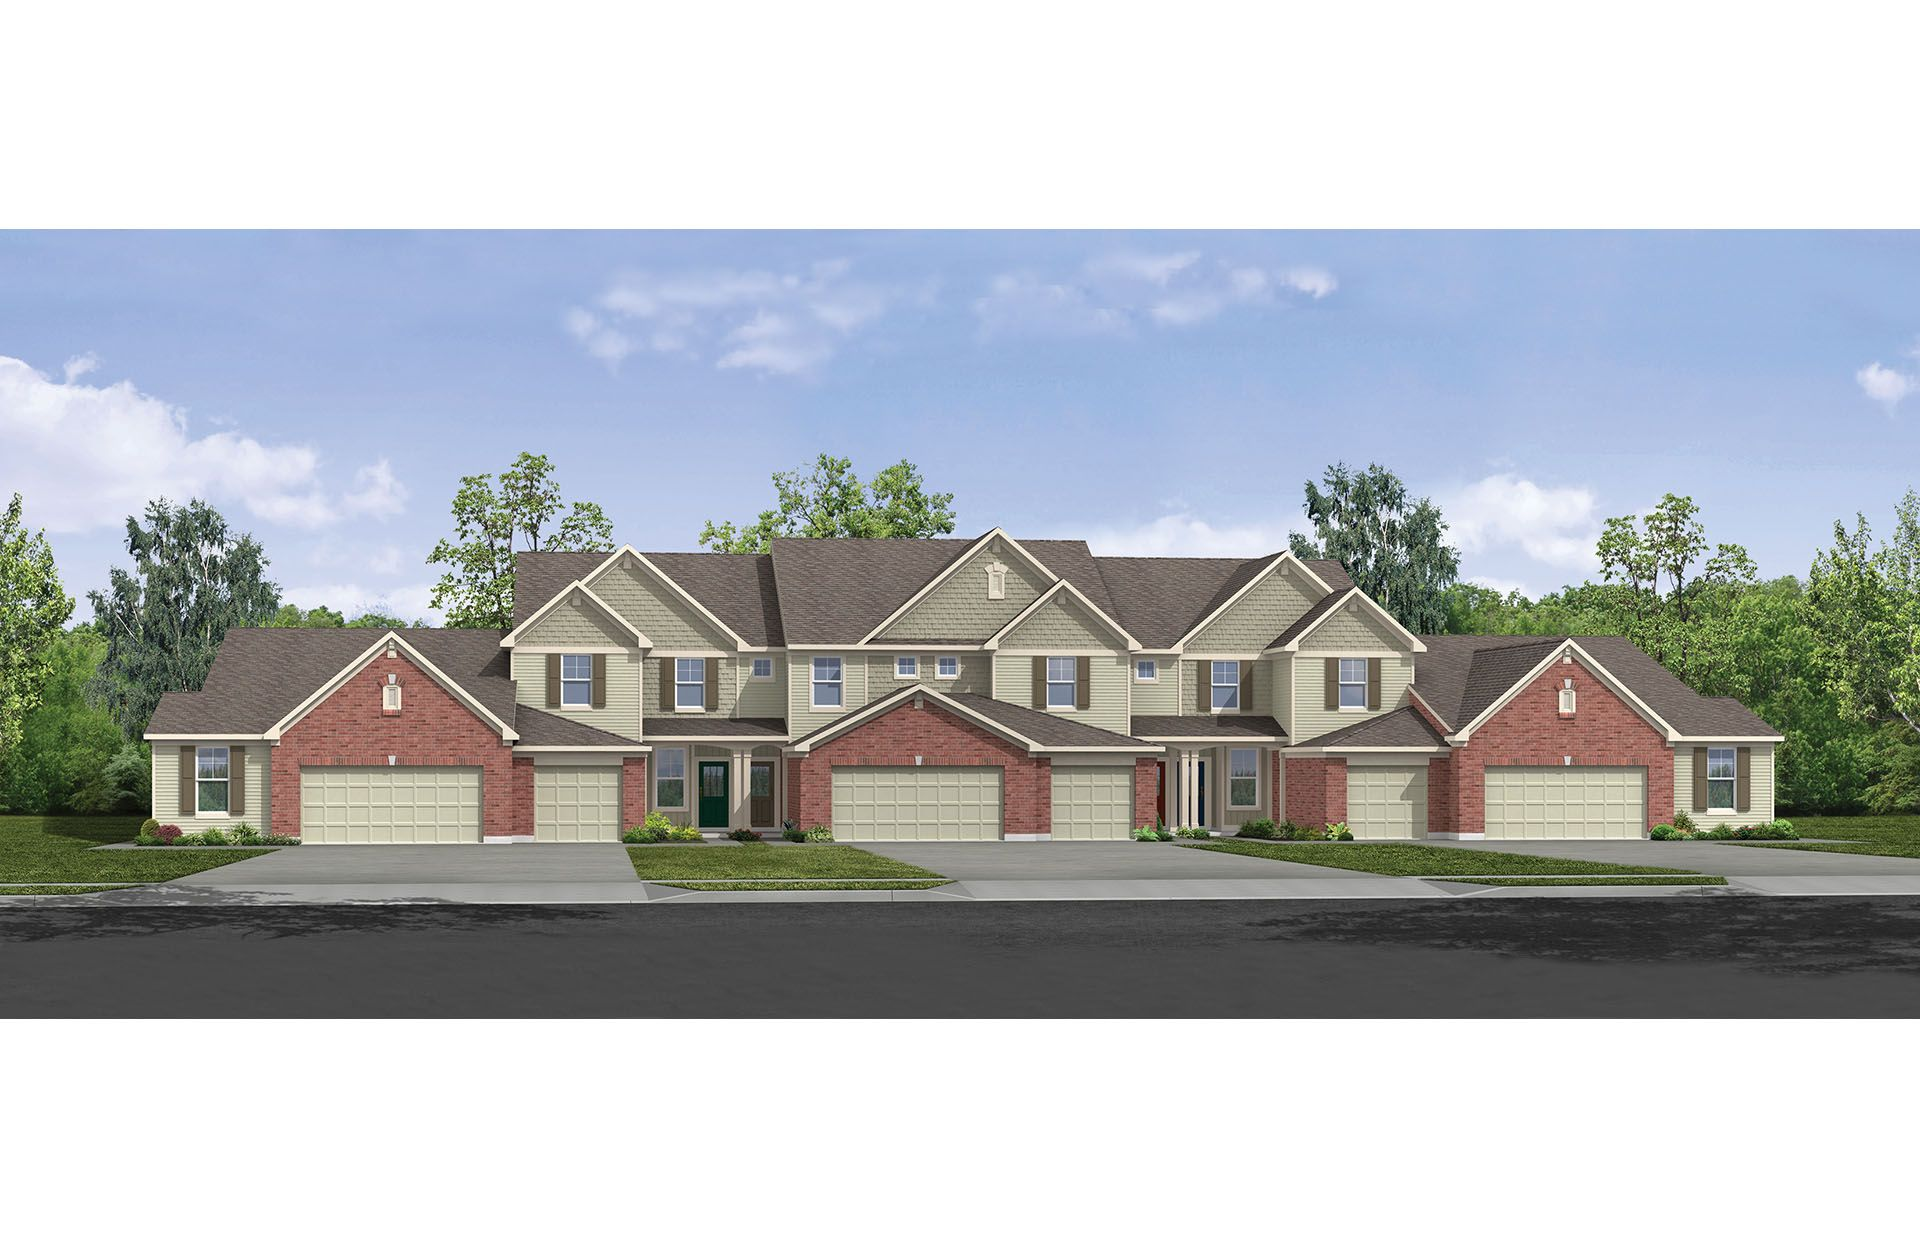 Fairways at Meadowood by Drees Homes